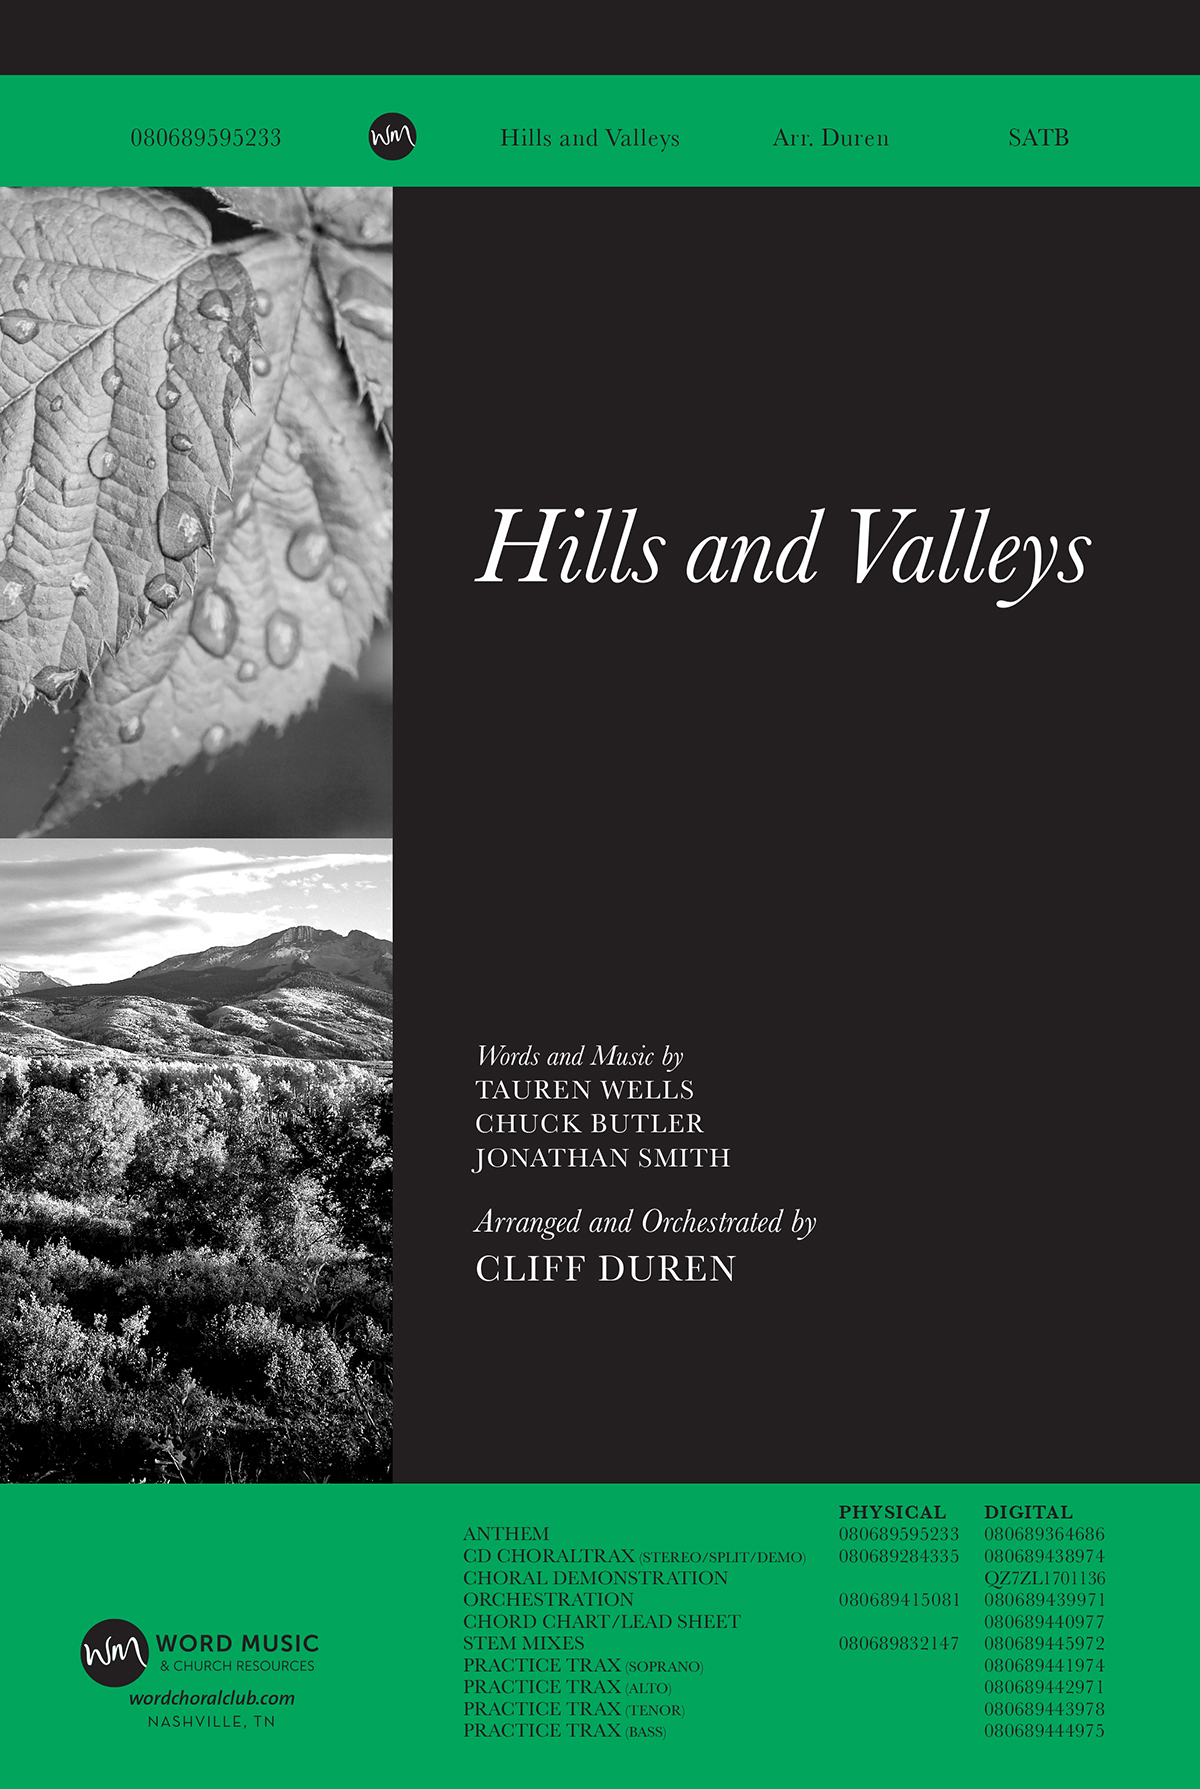 Hills and Valleys